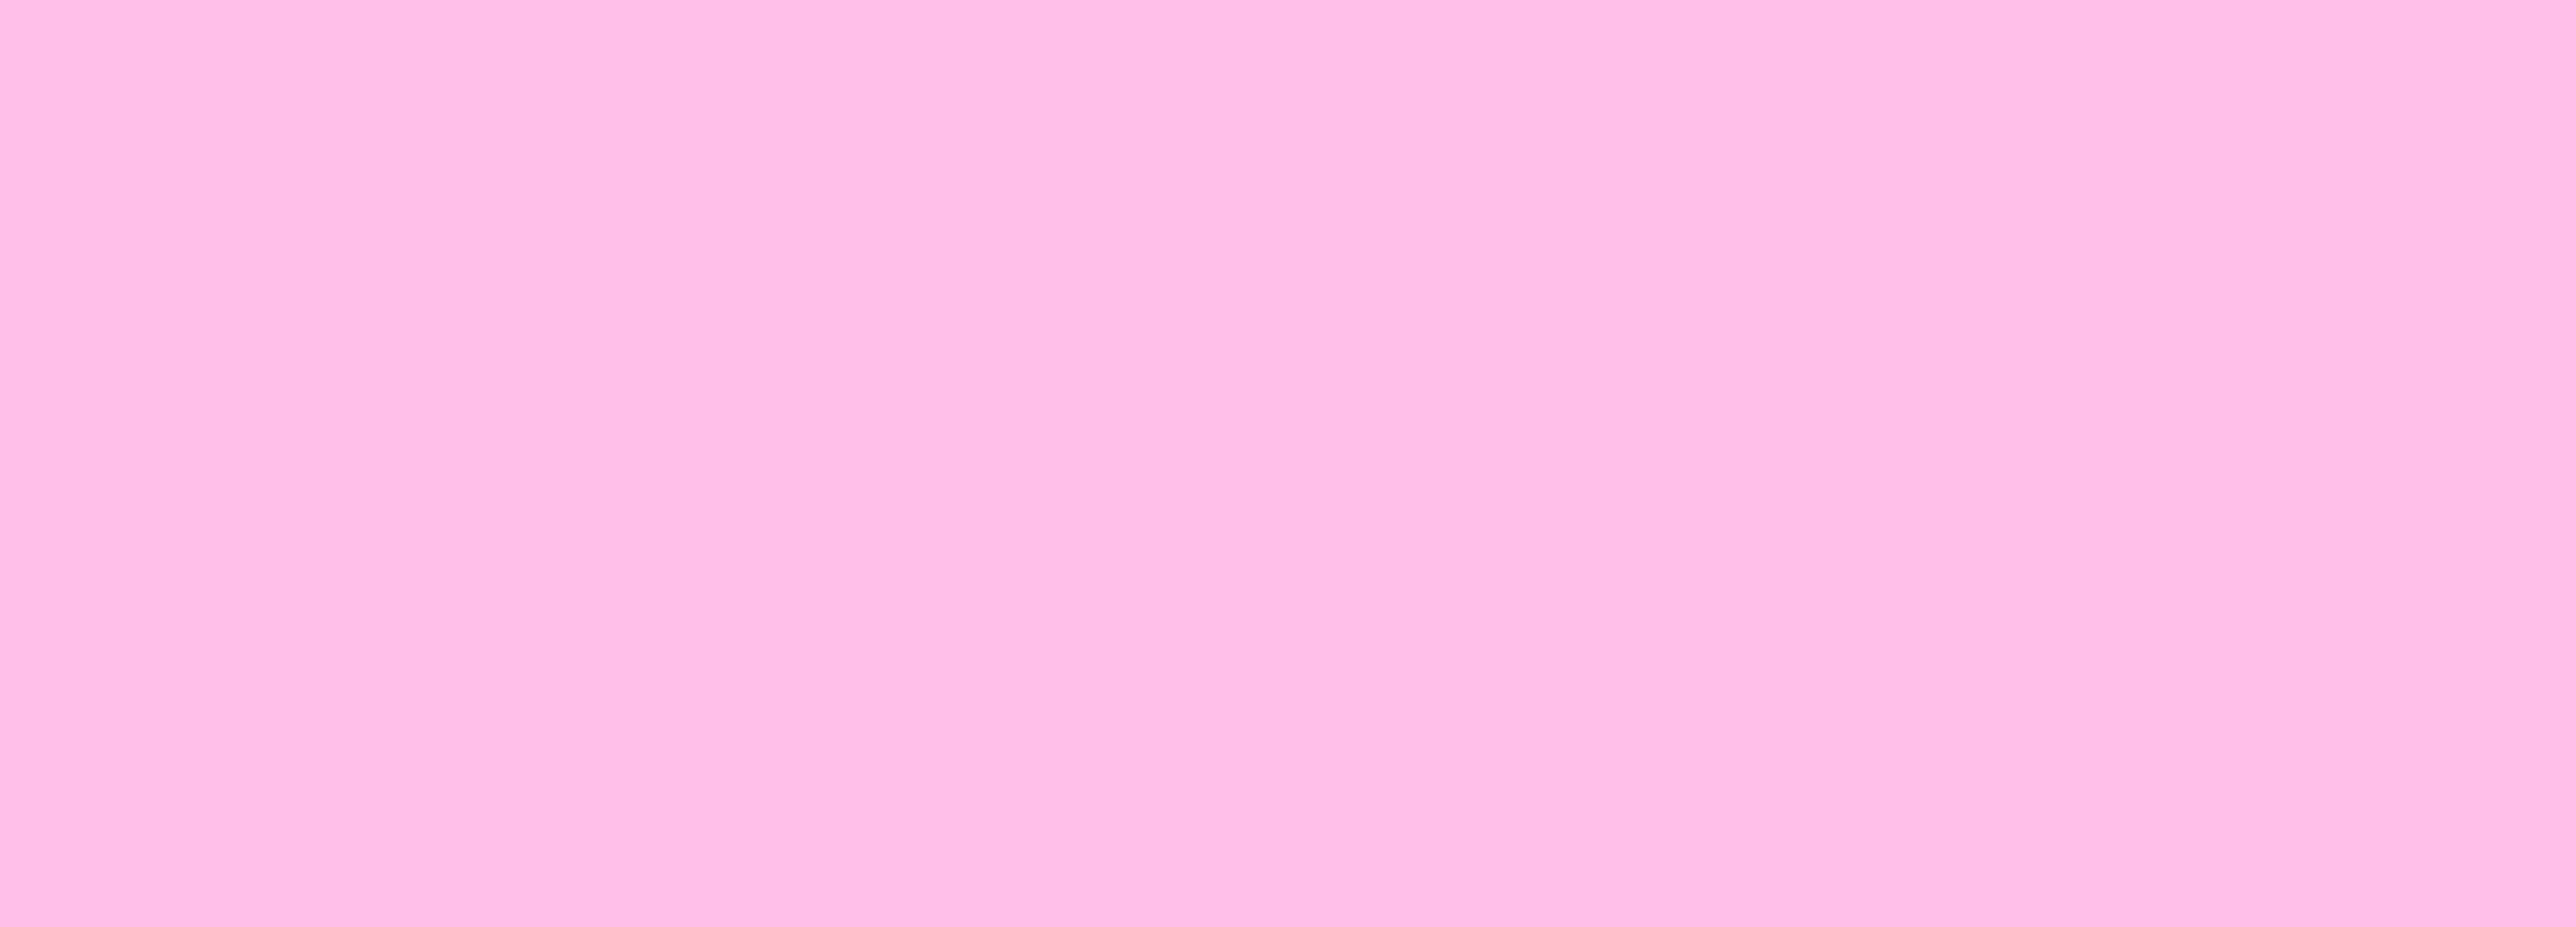 The 29 Decorative Baby Pink Color - Homes Alternative